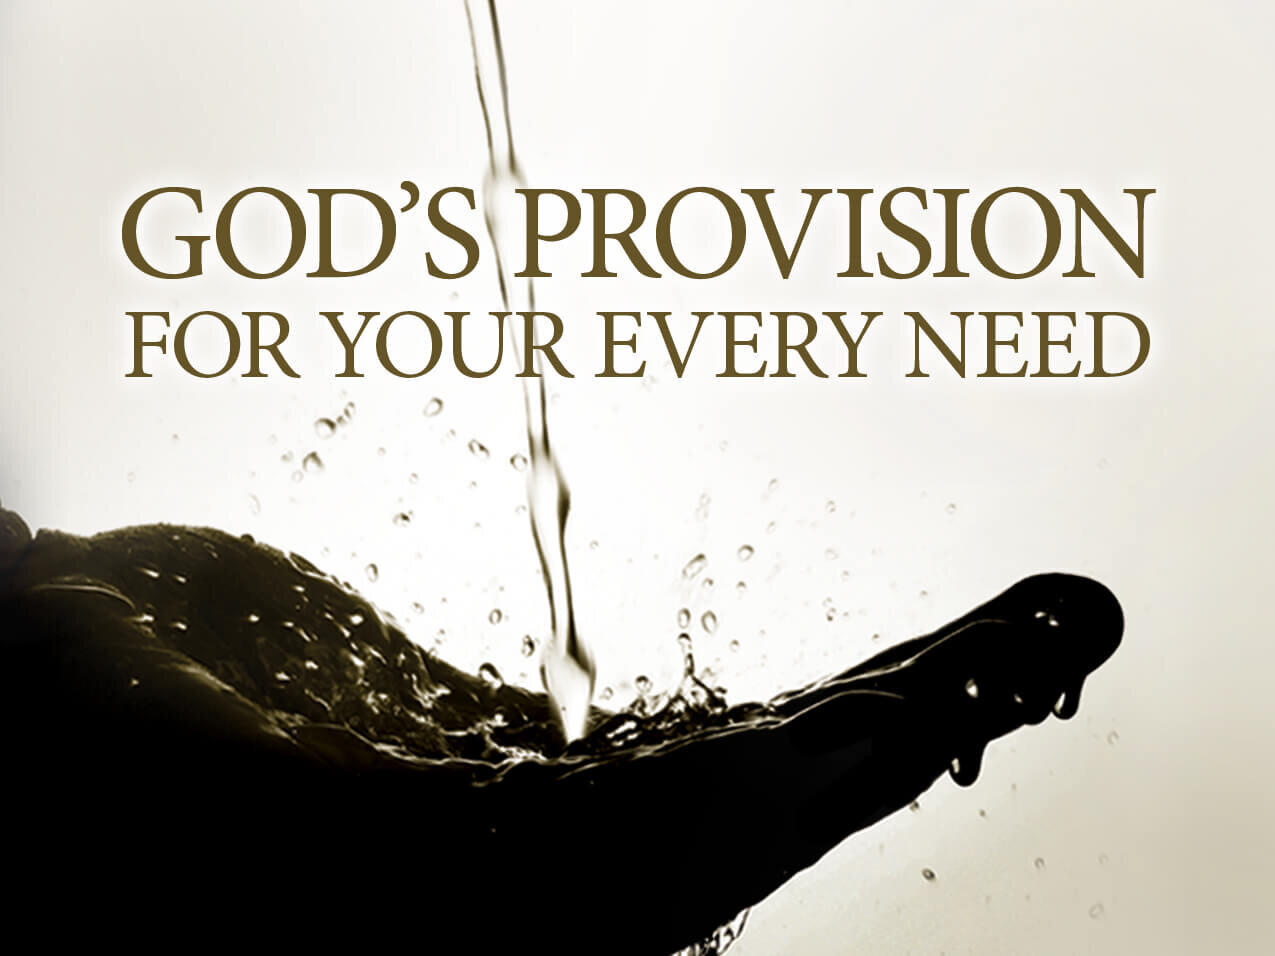 God'sProvision.jpg